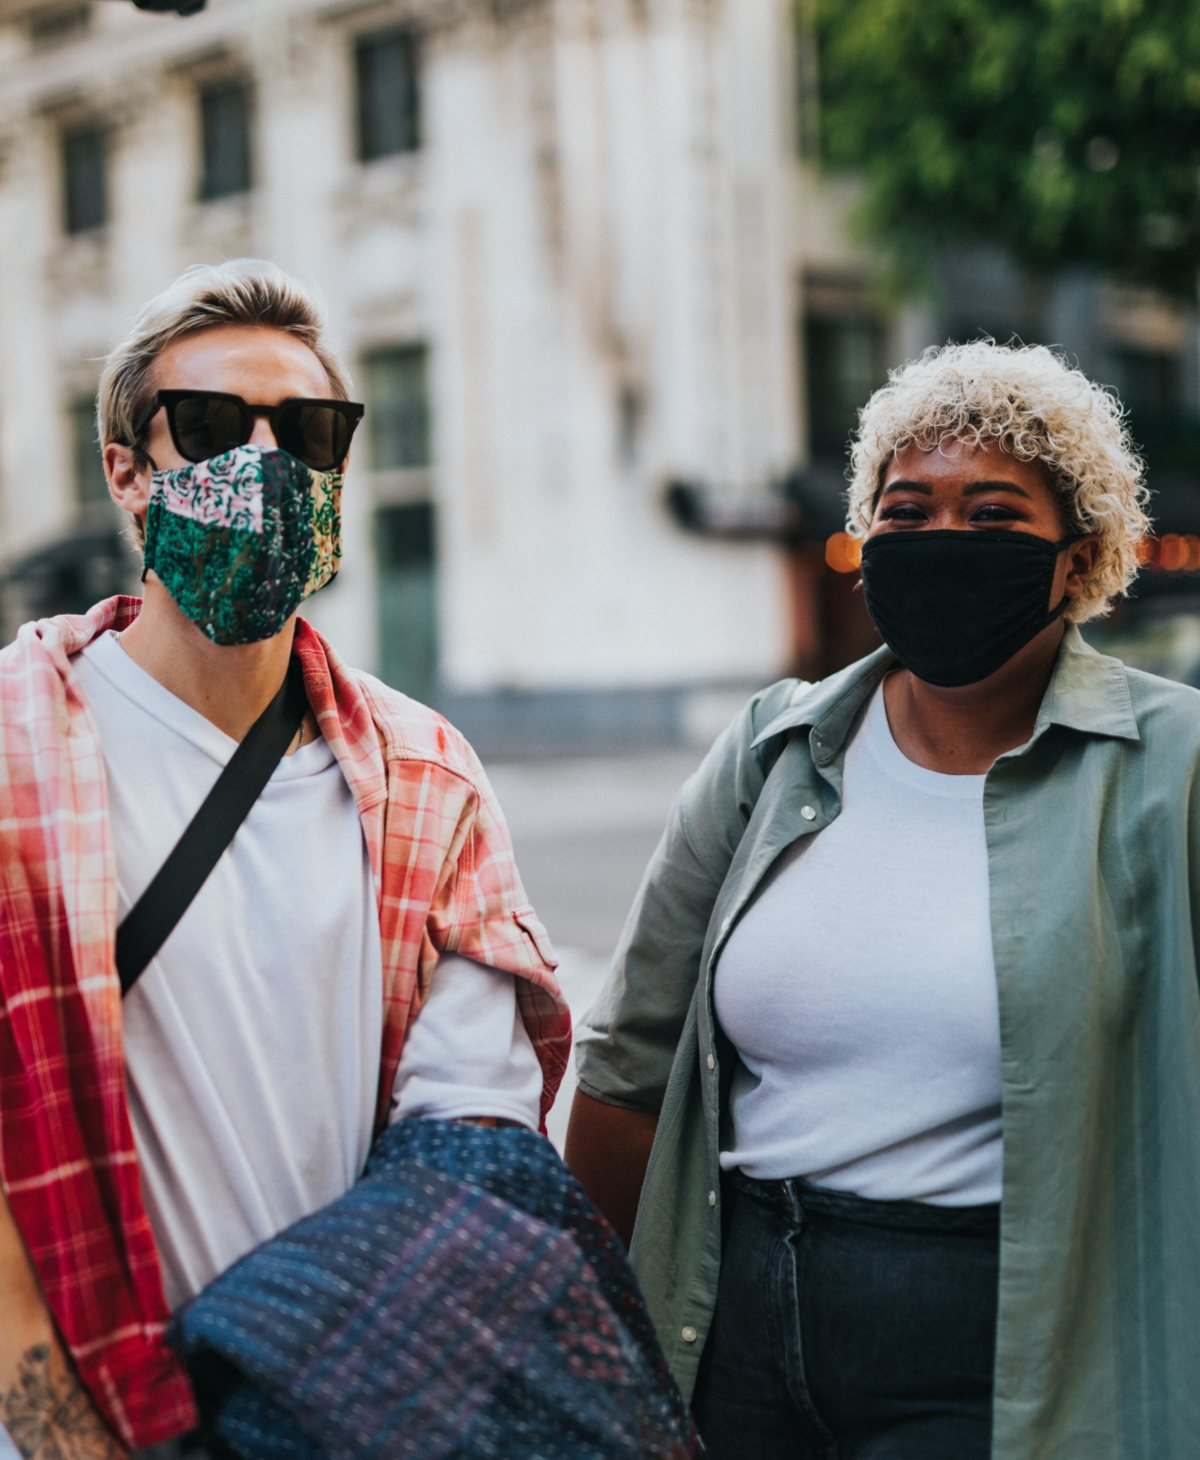 Two young people wearing masks